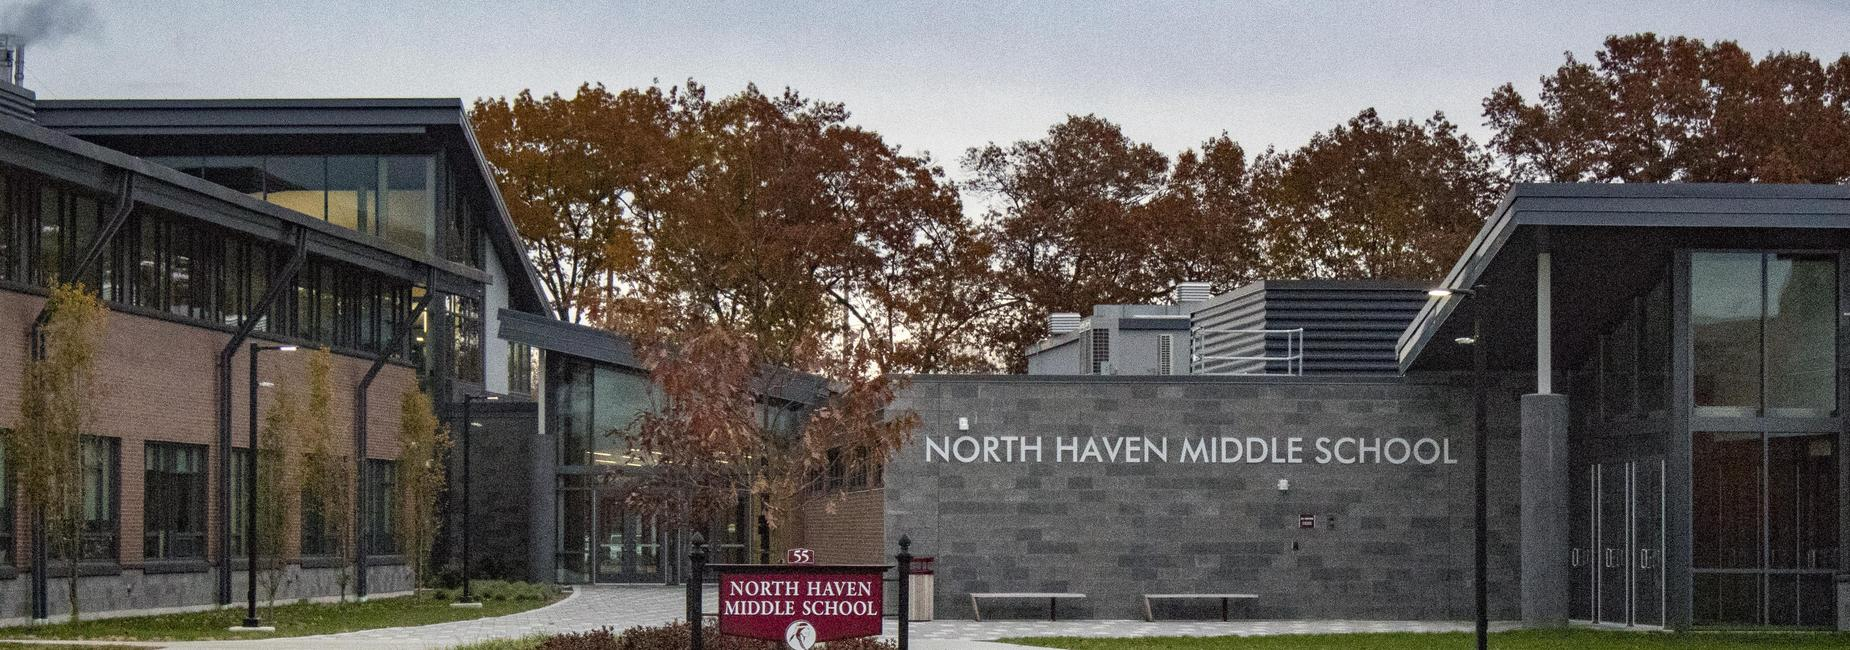 North Haven Middle School